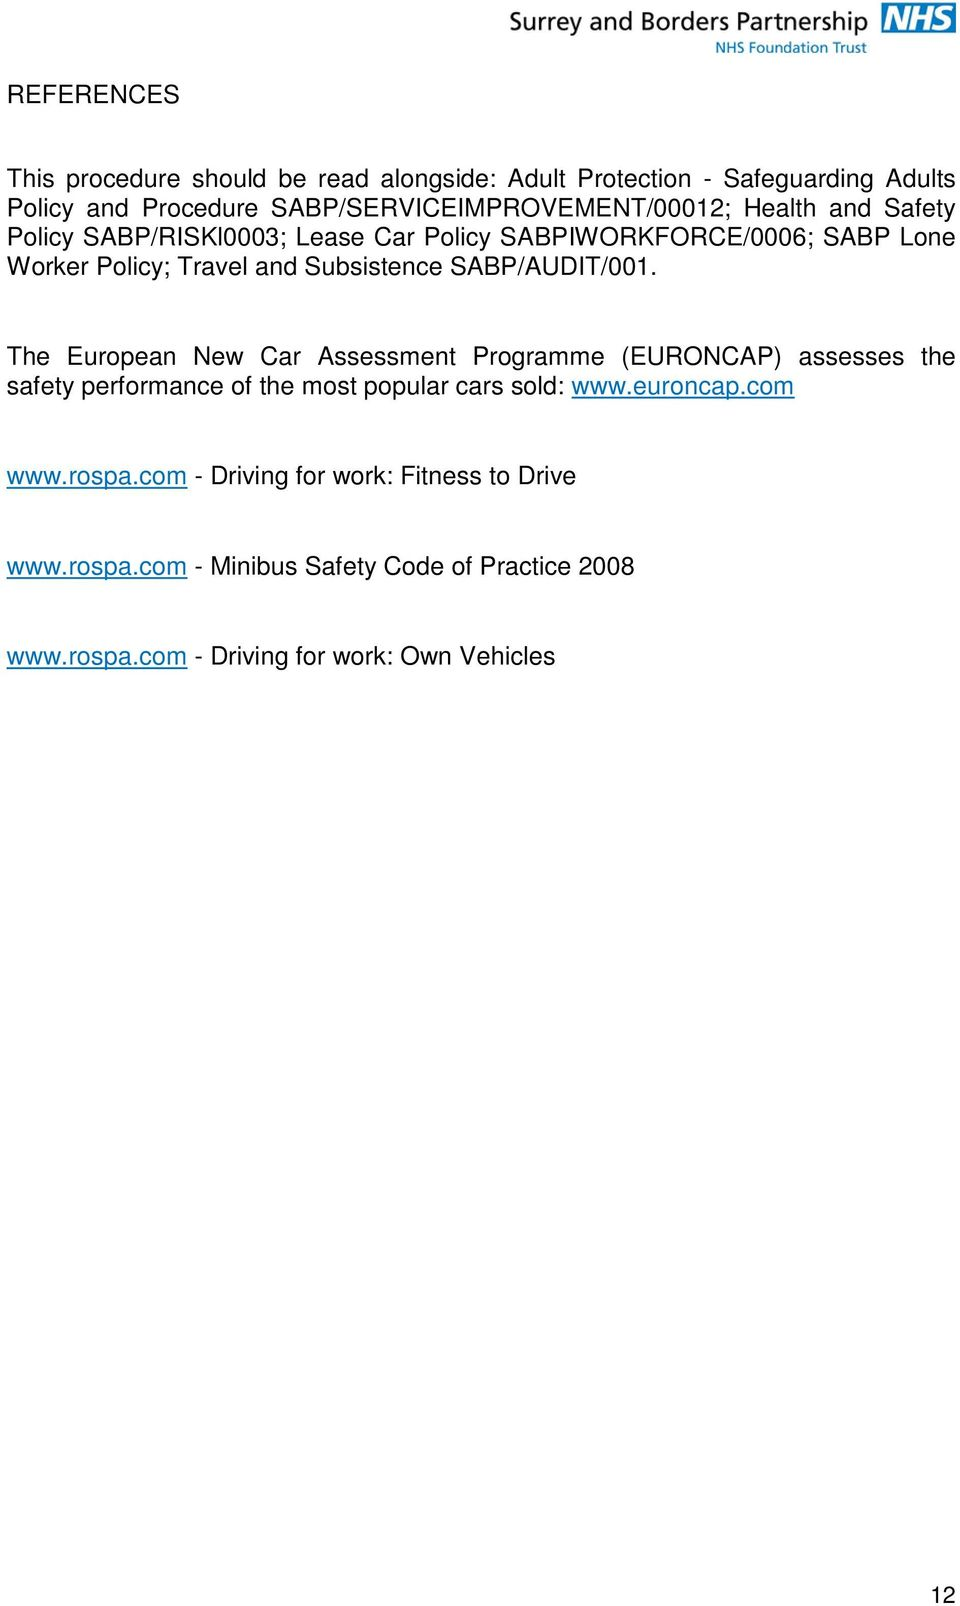 The European New Car Assessment Programme (EURONCAP) assesses the safety performance of the most popular cars sold: www.euroncap.com www.rospa.